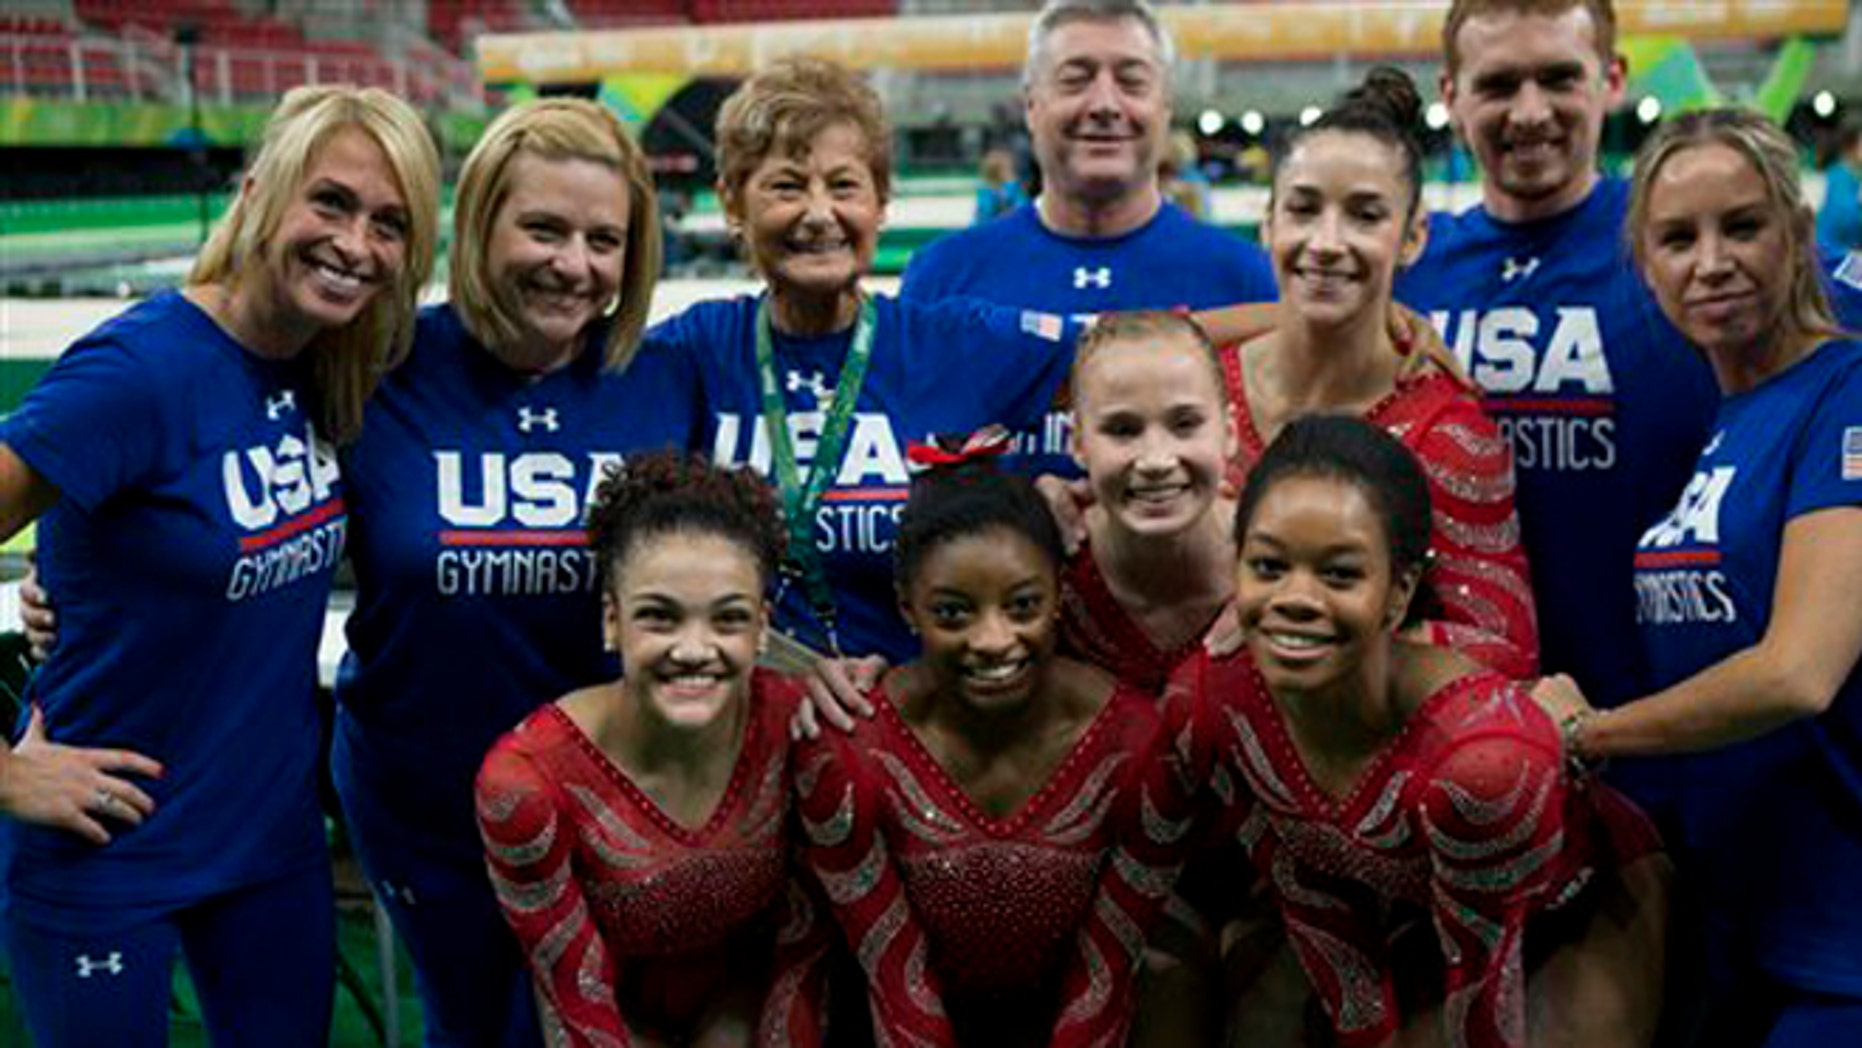 The United States women's gymnastic team poses for a picture with their coaching staff after finishing podium training ahead of the 2016 Summer Olympics in Rio de Janeiro, Brazil, Thursday, Aug. 4, 2016. Front row, from left, are gymnasts Lauren Hernandez, Simone Biles, and Gabby Douglas. Behind them are Madison Kocian, left, and Alexandra Raisman. Head coach Martha Karolyi is back row, third from left.(AP Photo/Rebecca Blackwell)